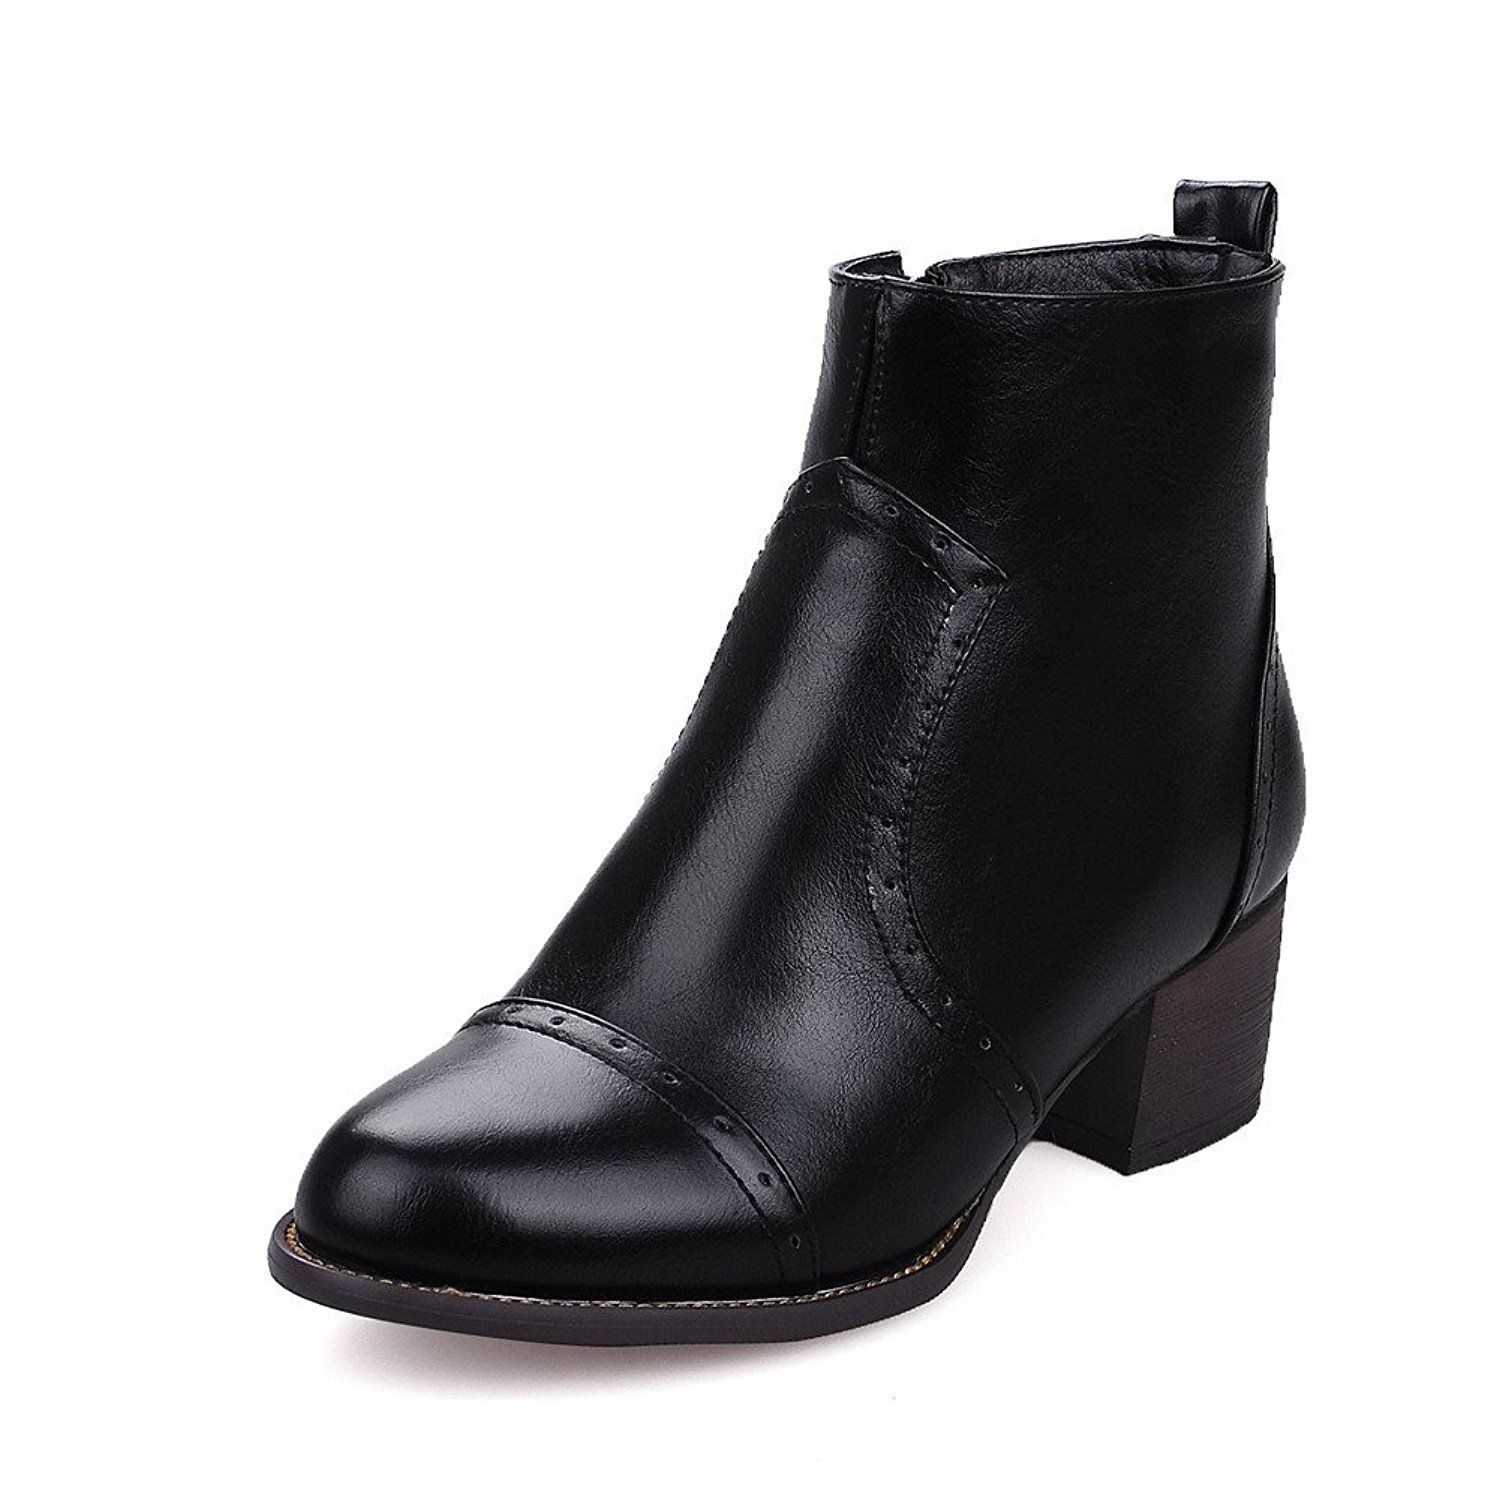 Women's Low-Heels Solid Round Closed Toe Soft Material Zipper Boots